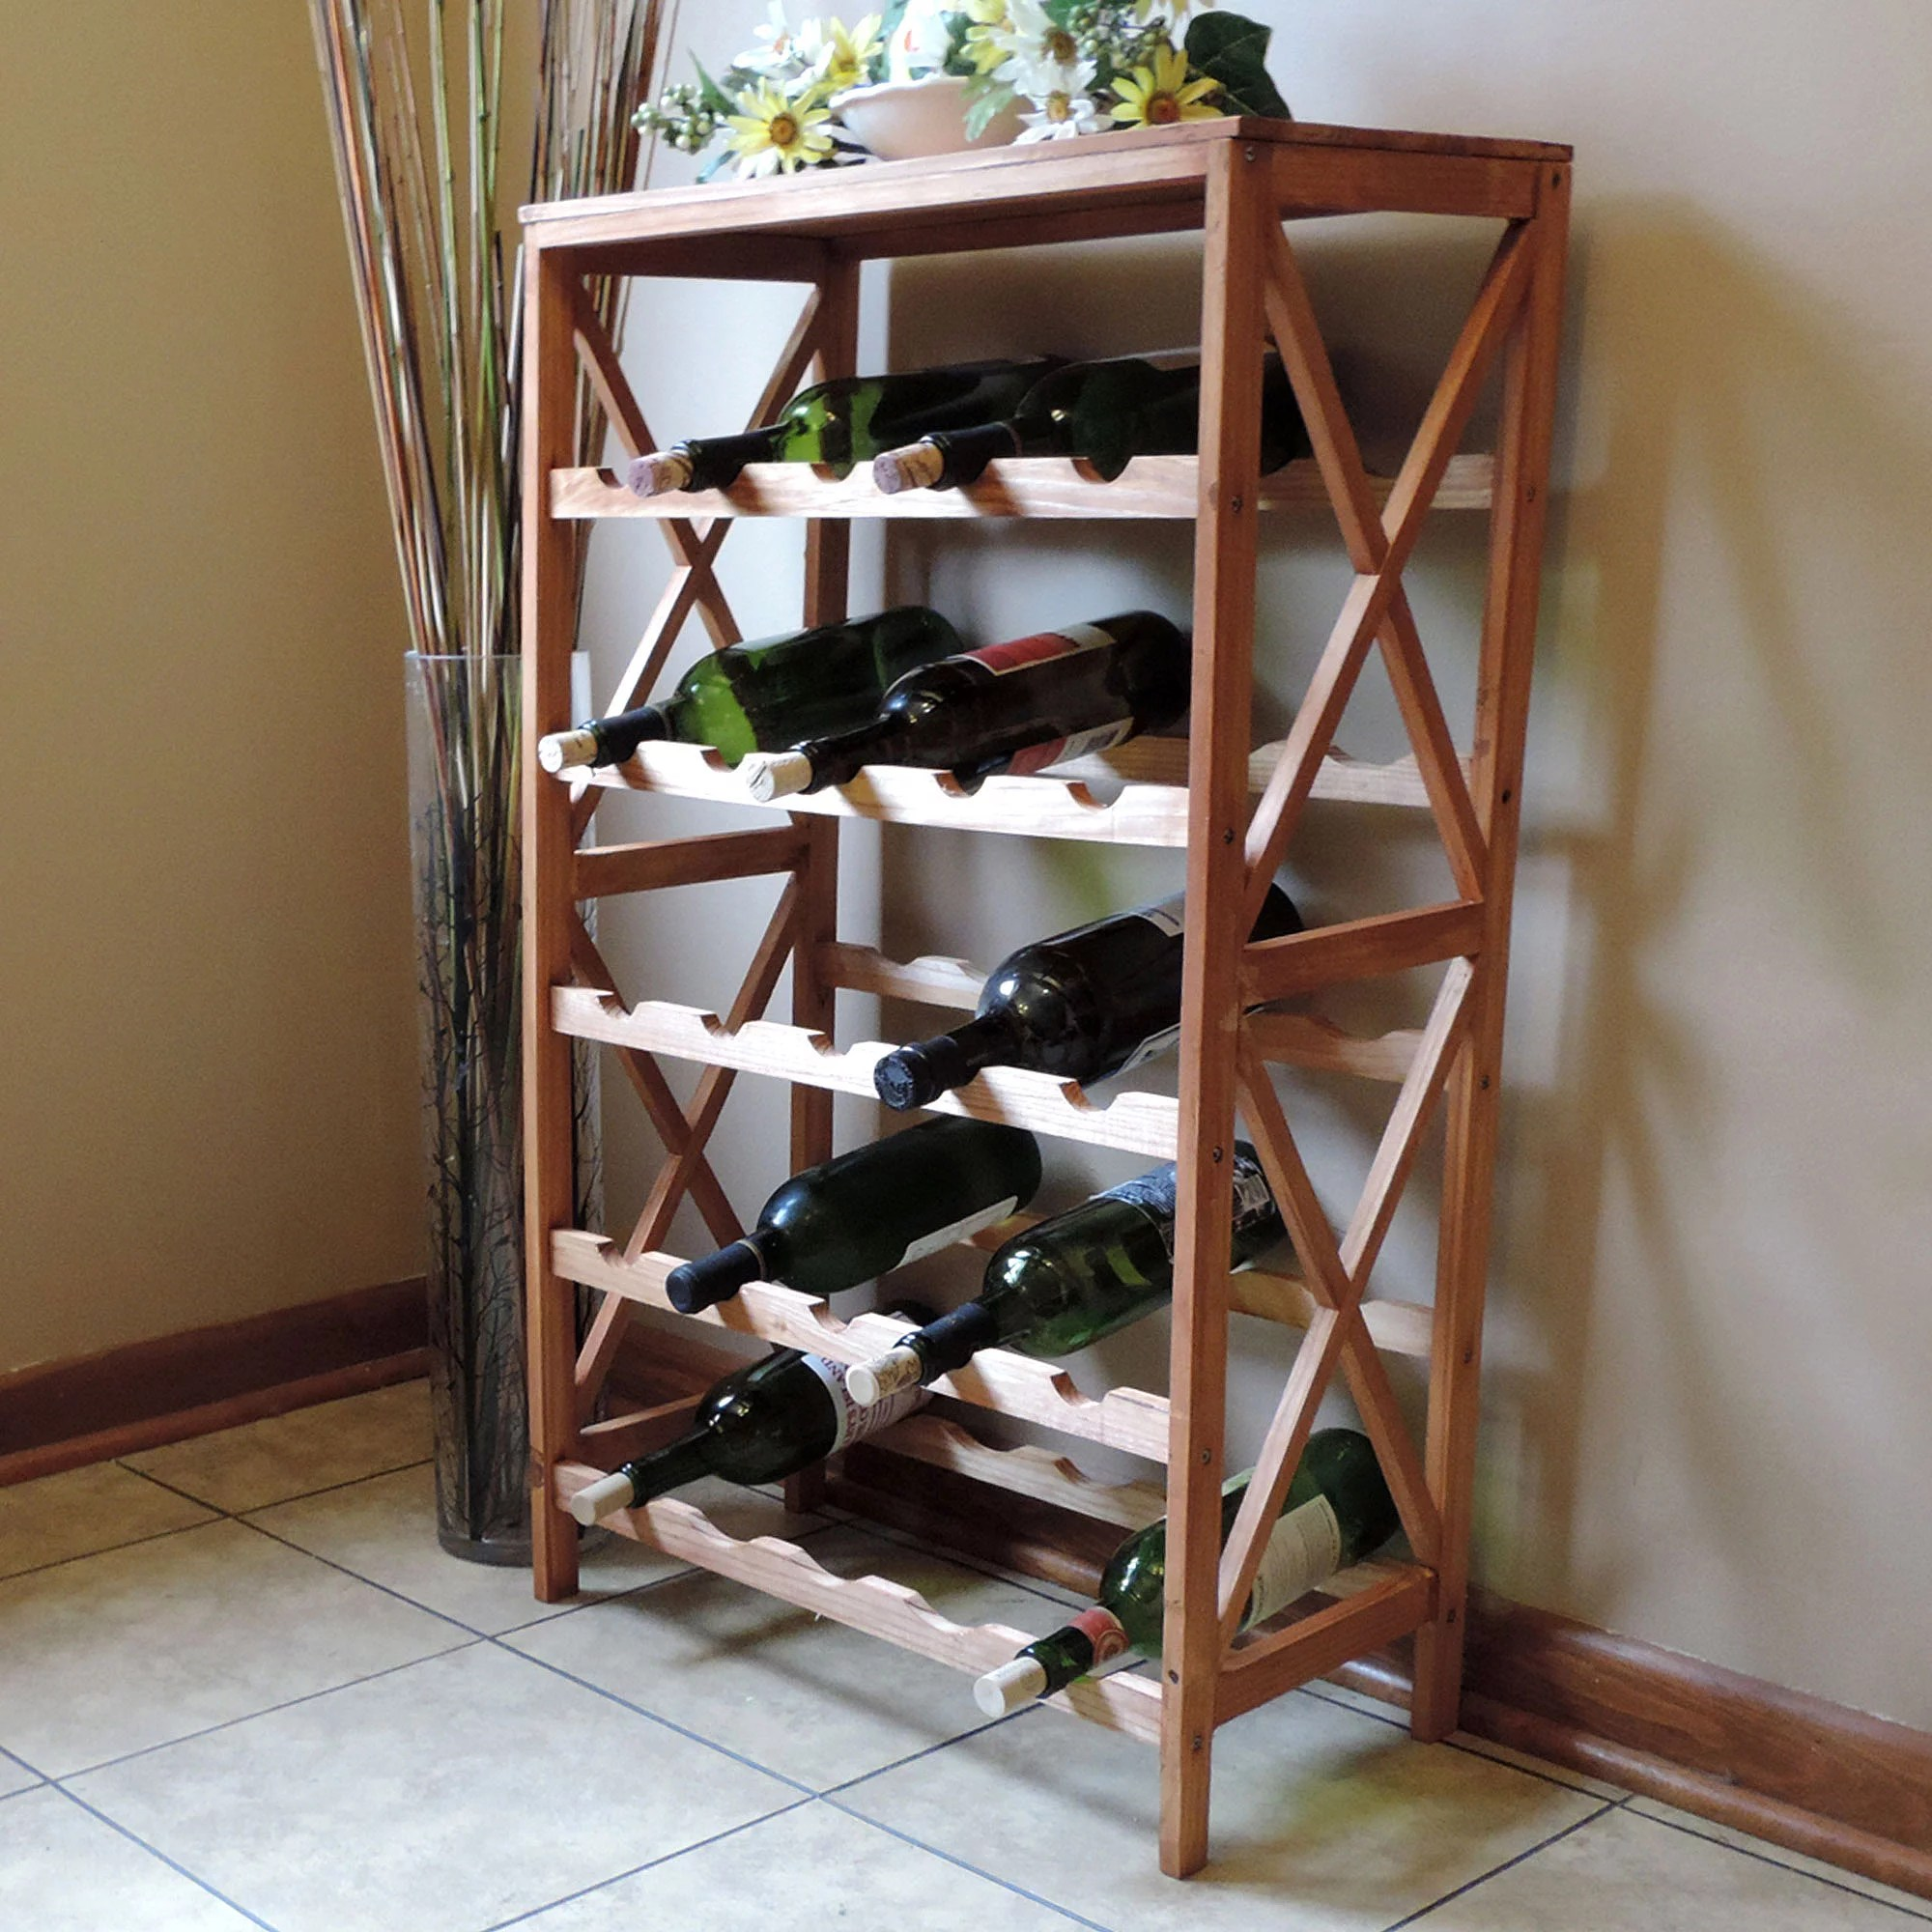 Pretty Wine Racks Rustic Wine Rack Space Saving Free Standing Wine Bottle Holder For Kitchen Bar Dining Or Living Rooms Classic Storage Shelf By Lavish Home